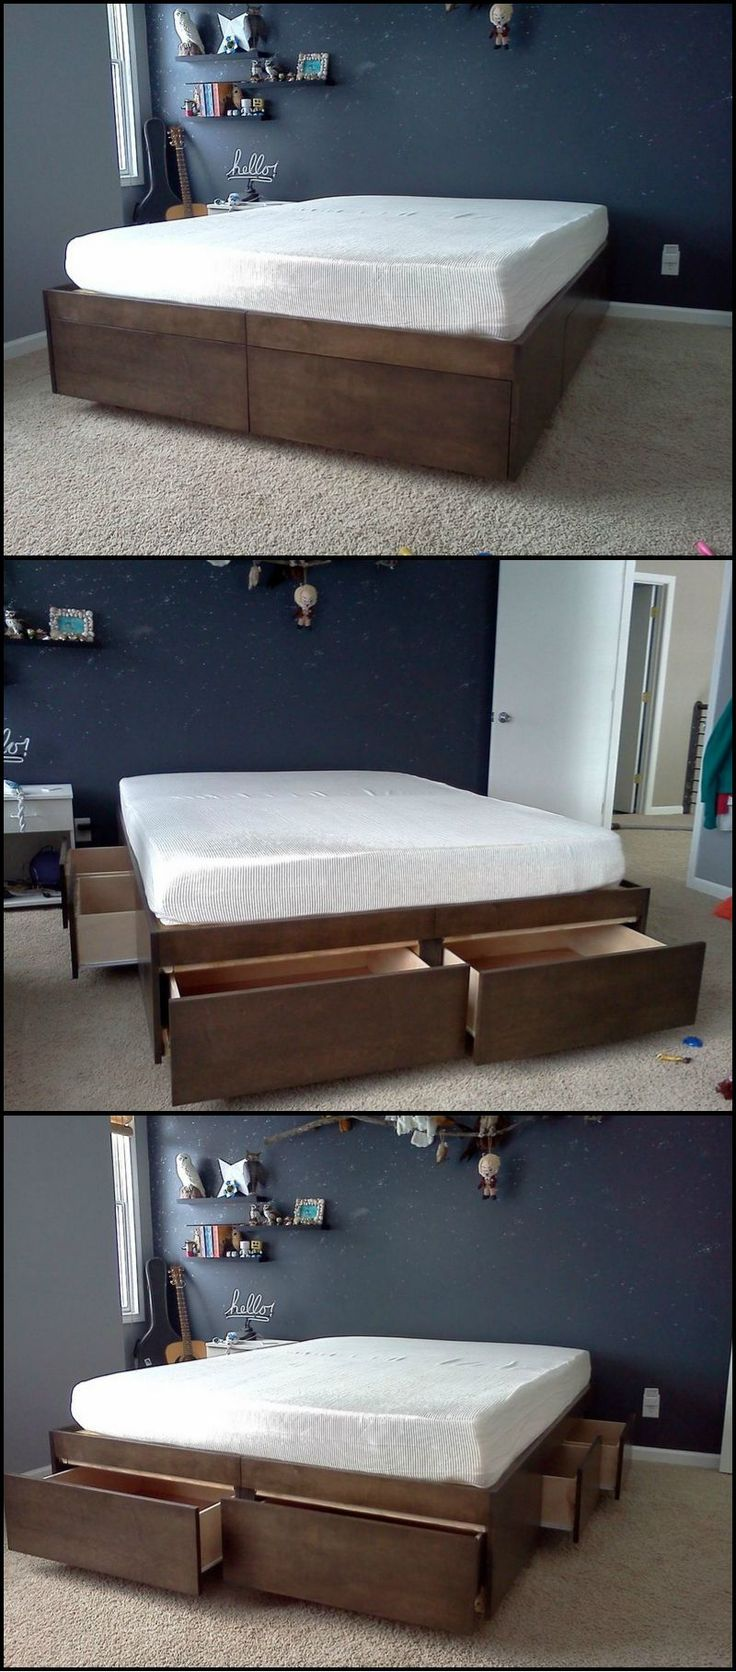 Do-It-Yourself Bed With Drawers